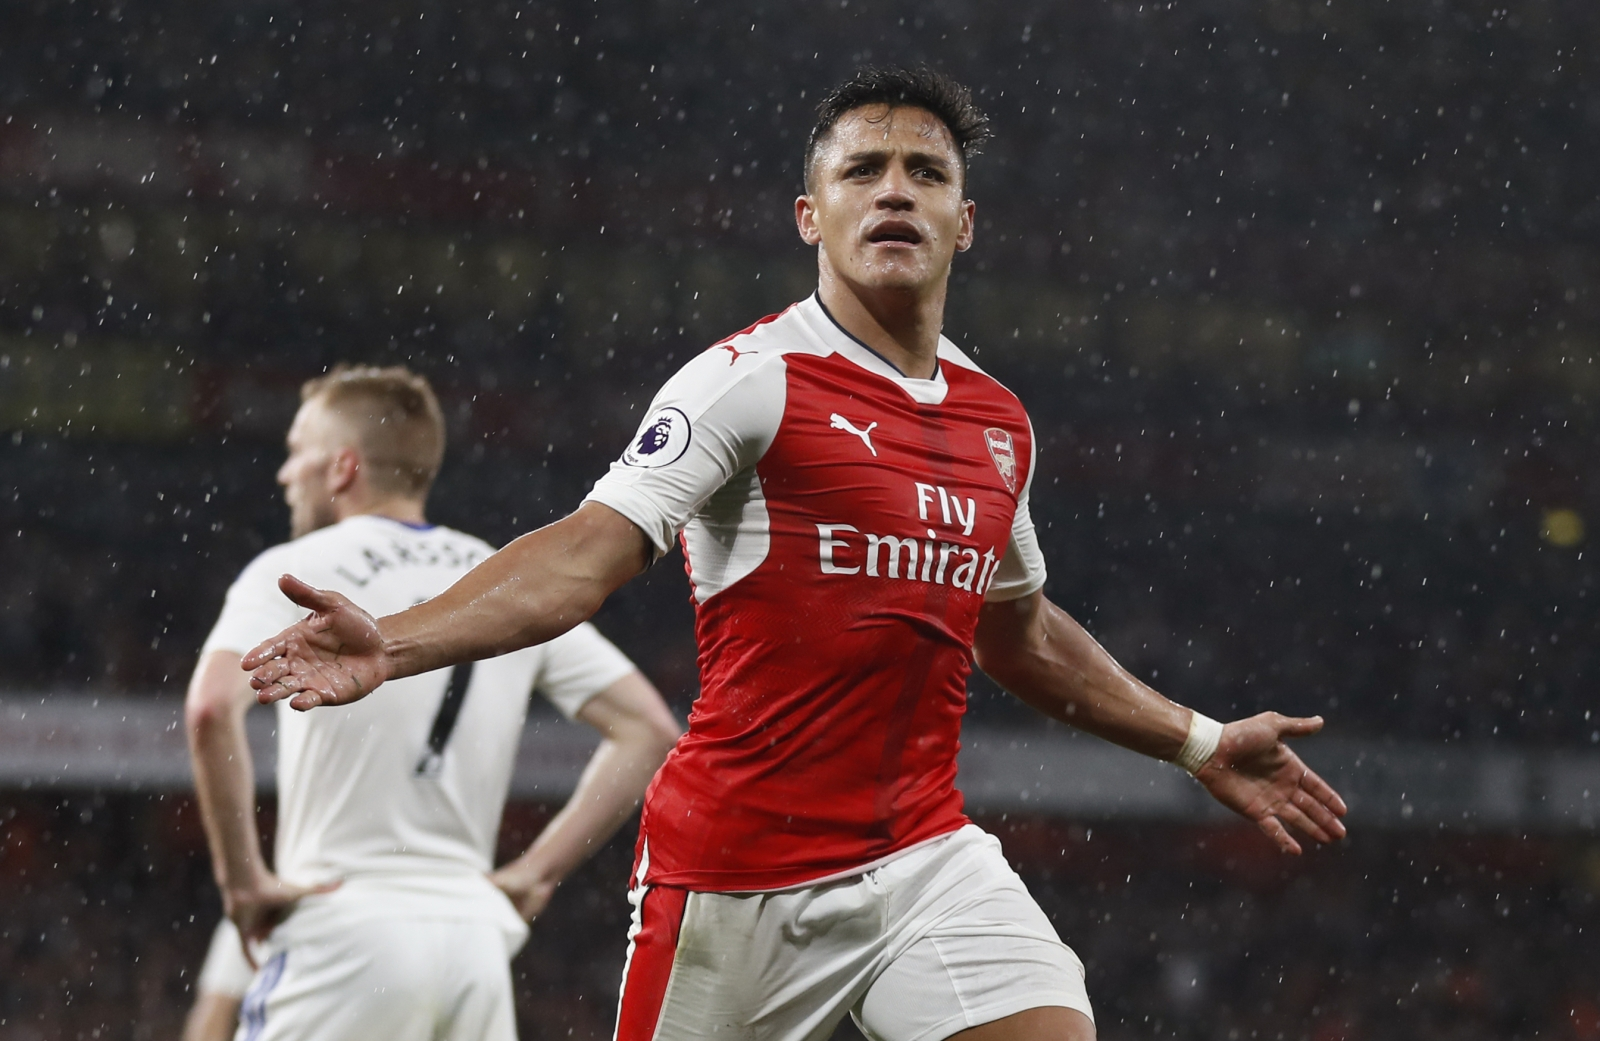 Arsenal 2-0 Sunderland: In Focus - Sanchez